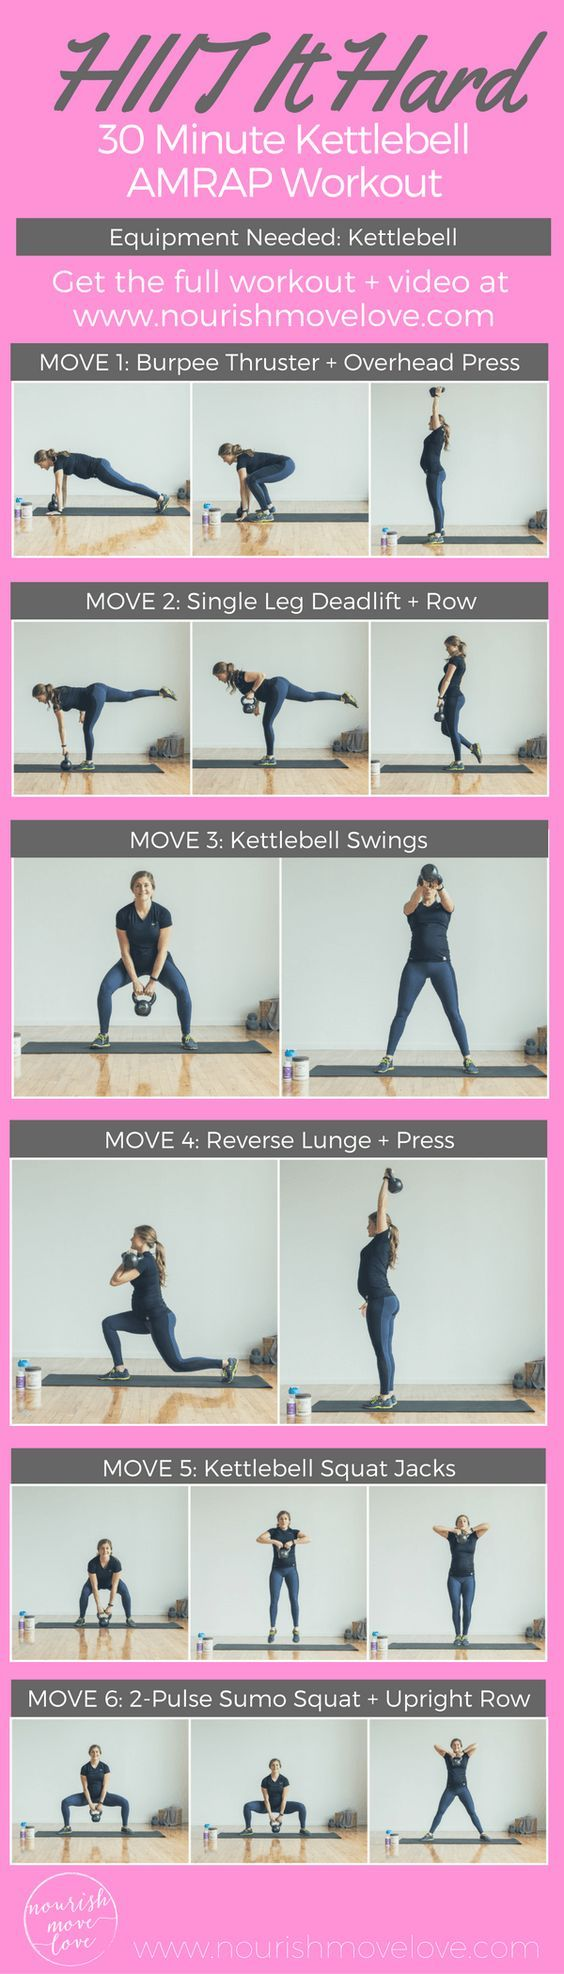 The Kettle Bell is one of the best pieces of fitness equipment for your house that you can invest in. It's one of the most versatile weights that can give you a full body workout, as well as an intense cardio session. It works by combining resistance training (building muscle) with cardiovascular conditioning (getting in …